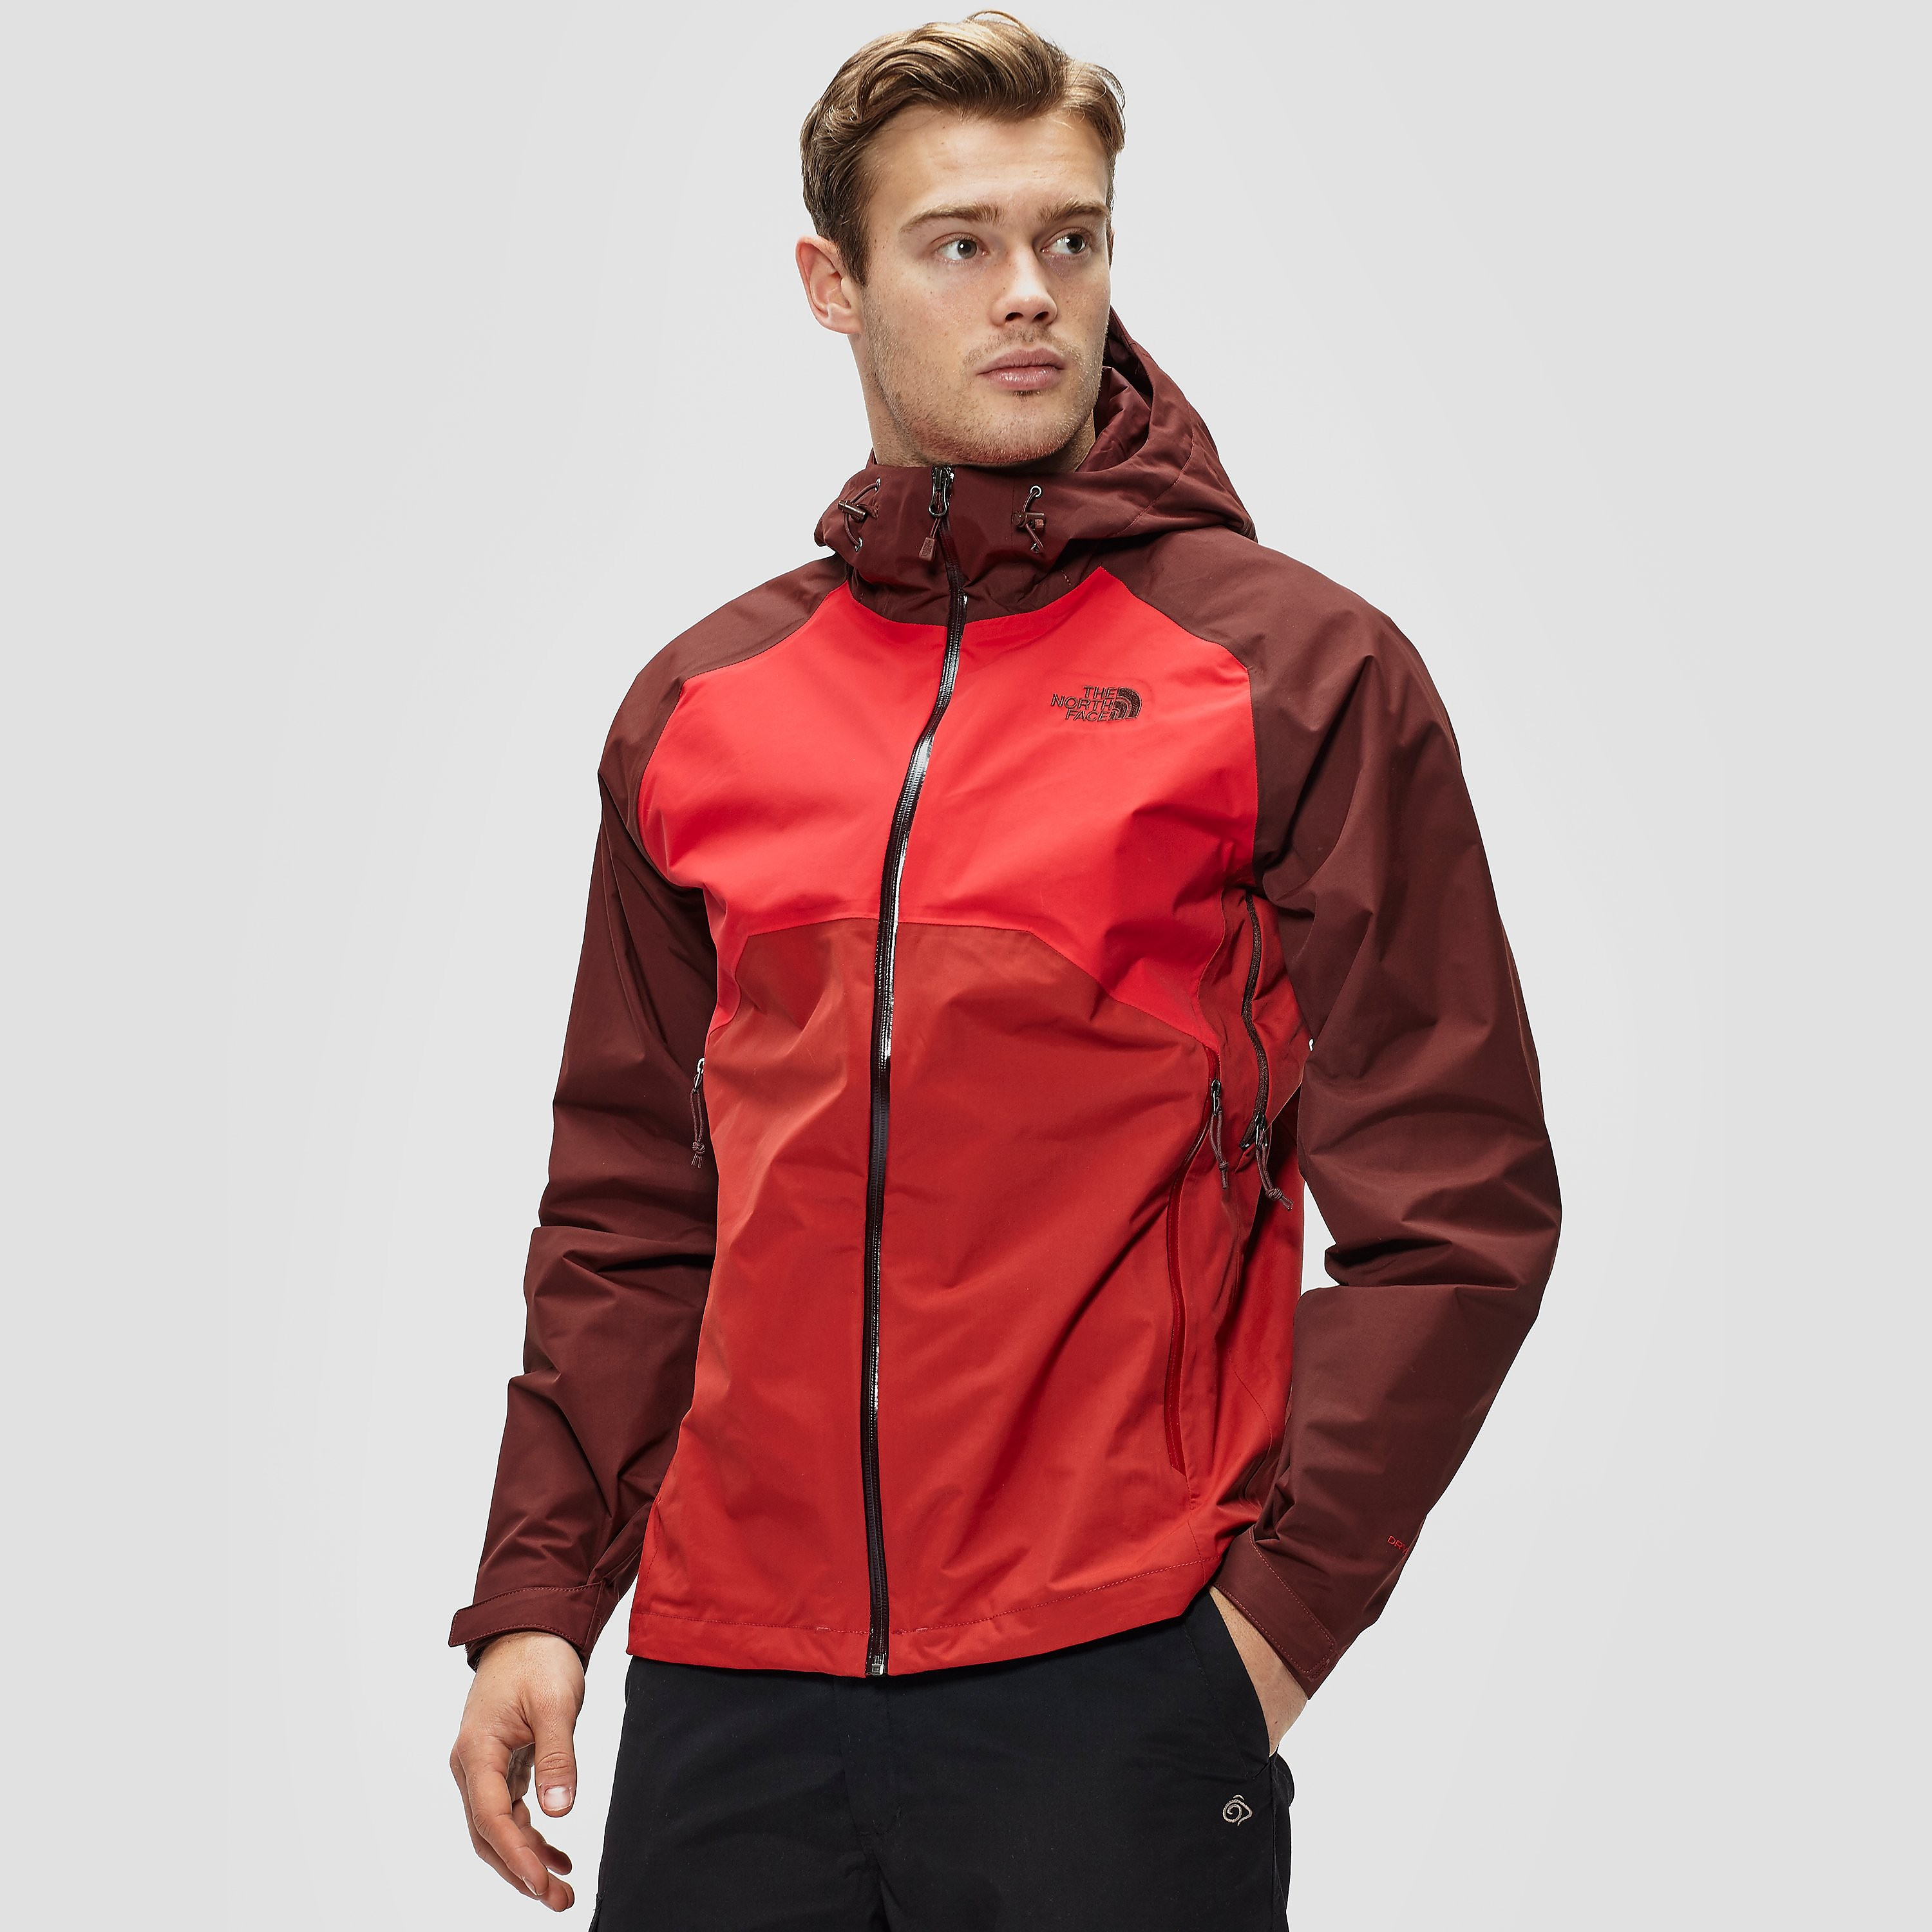 The north face Stratos Men's Jacket